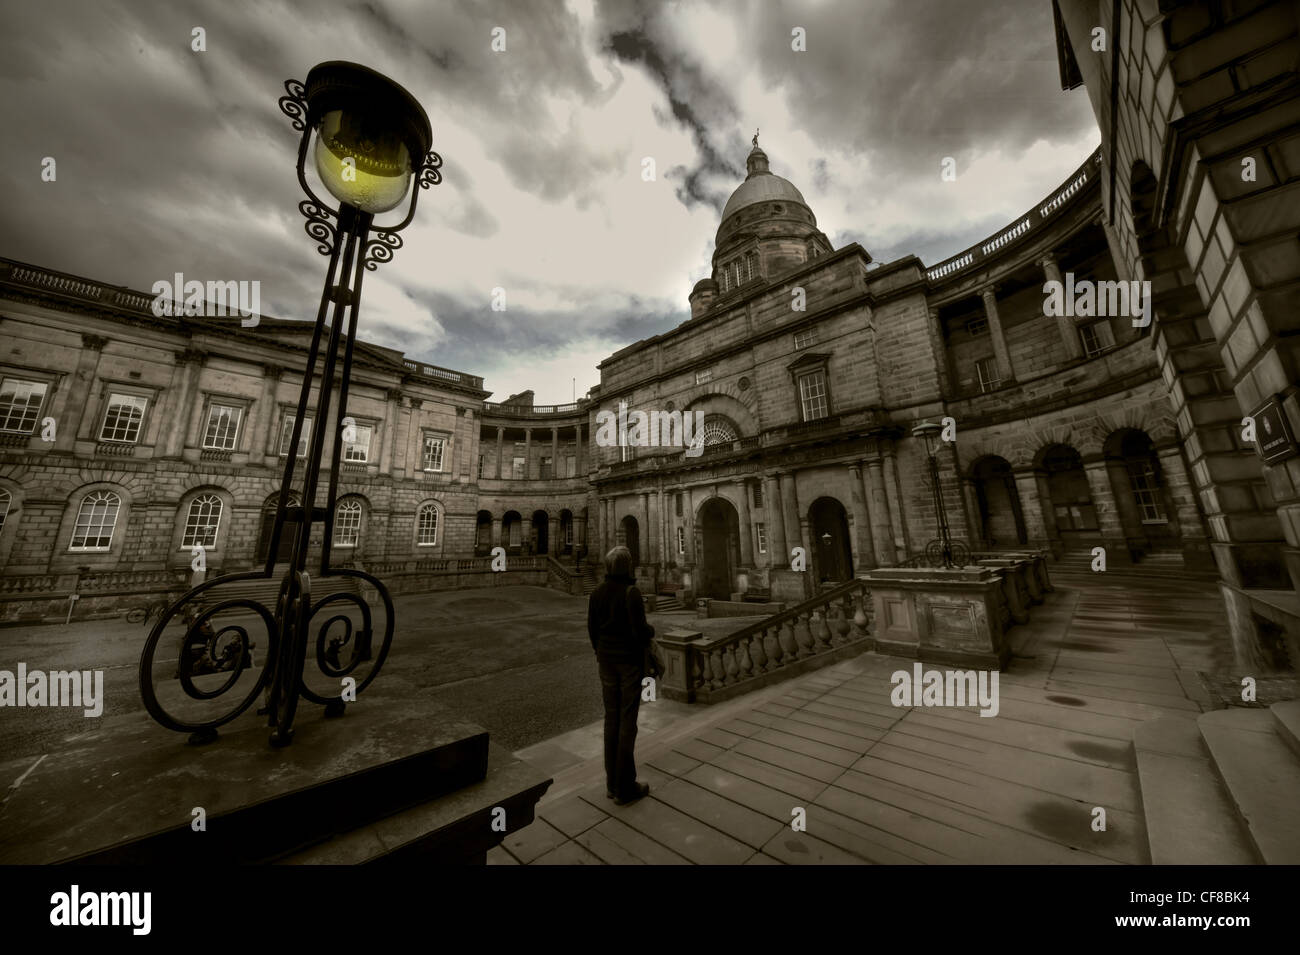 Edinburgh University stone buildings and Talbot Rice Gallery at South College Street and South Bridge, Scotland - Stock Image